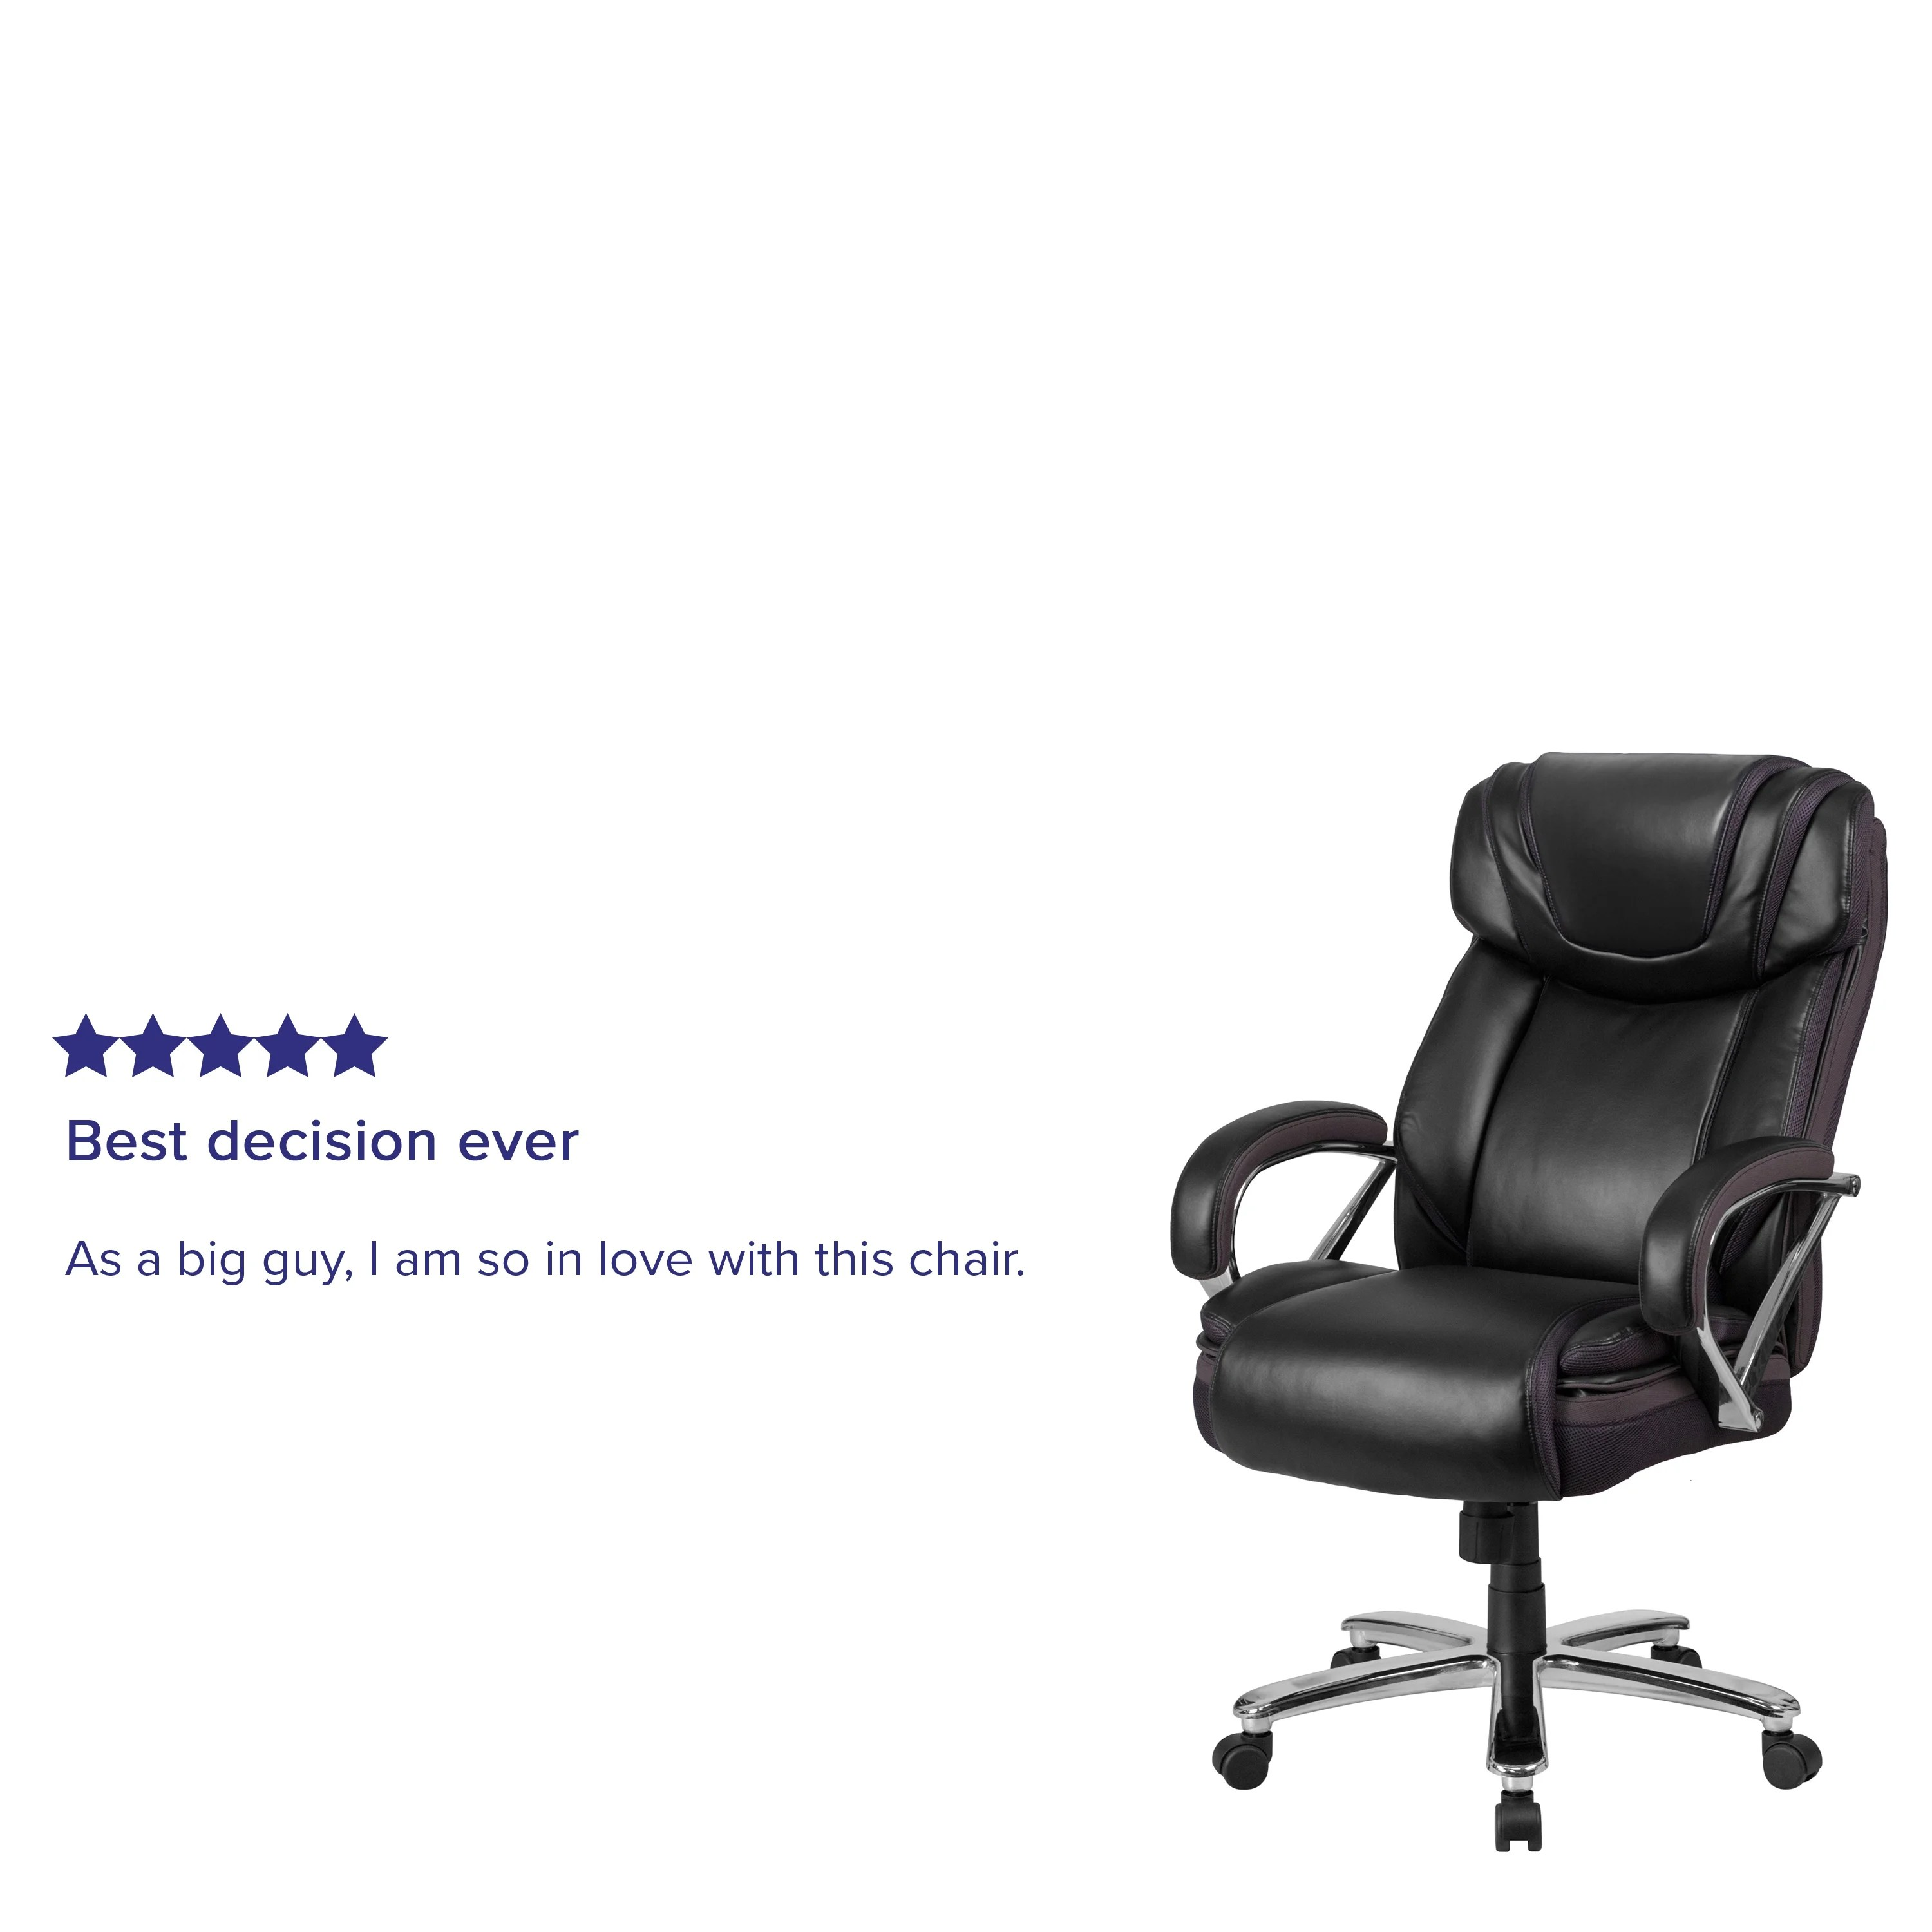 Big Tall 500 Lb Rated Leathersoft Swivel Office Chair W Extra Wide Seat On Sale Overstock 14216983